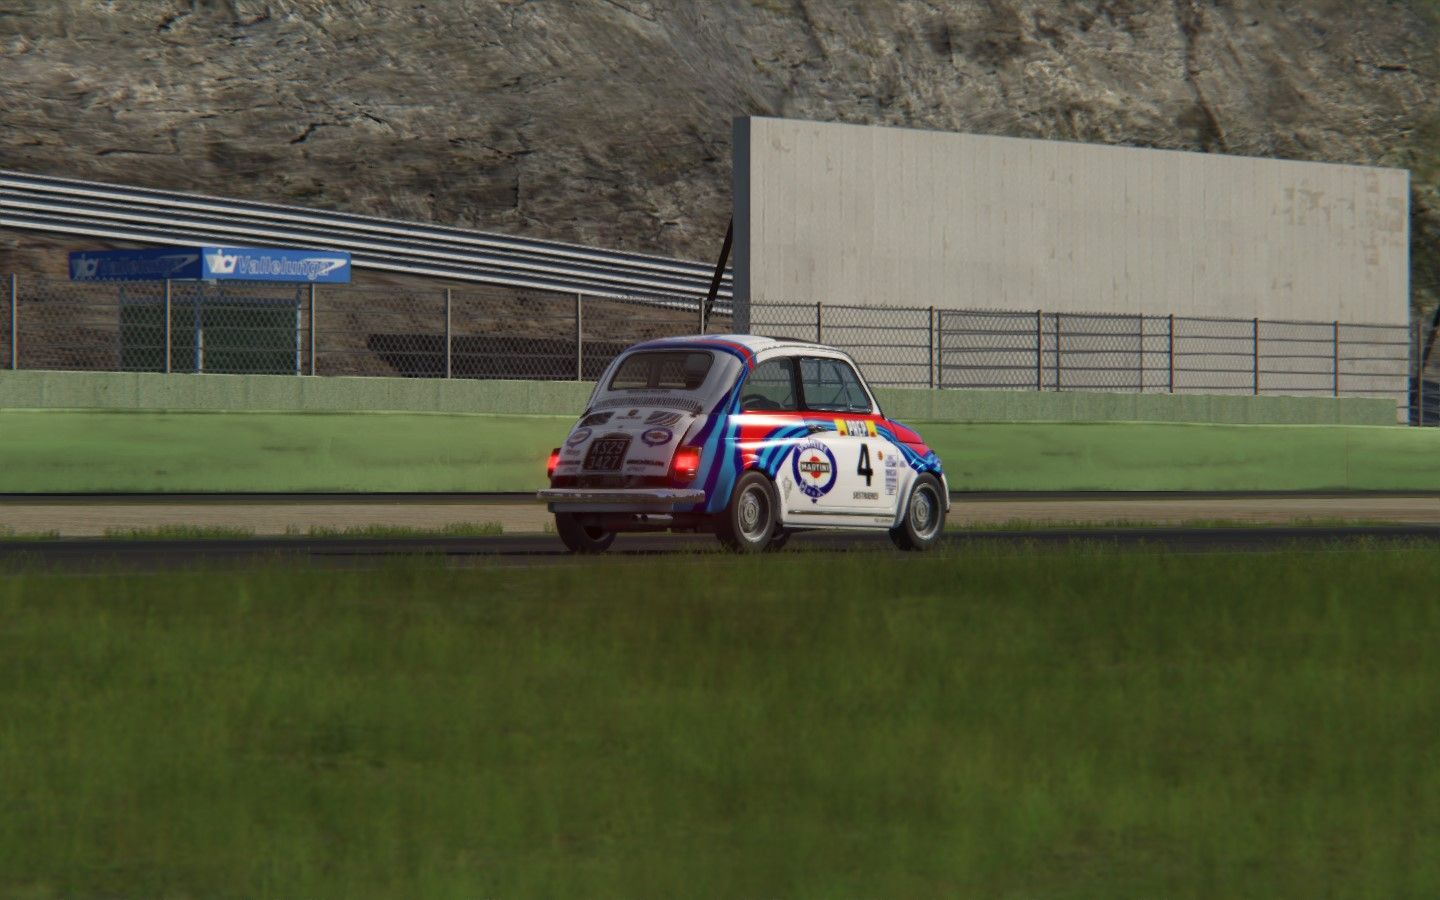 Screenshot_ks_abarth_595ss_ks_vallelunga_22-4-116-22-2-9.jpg